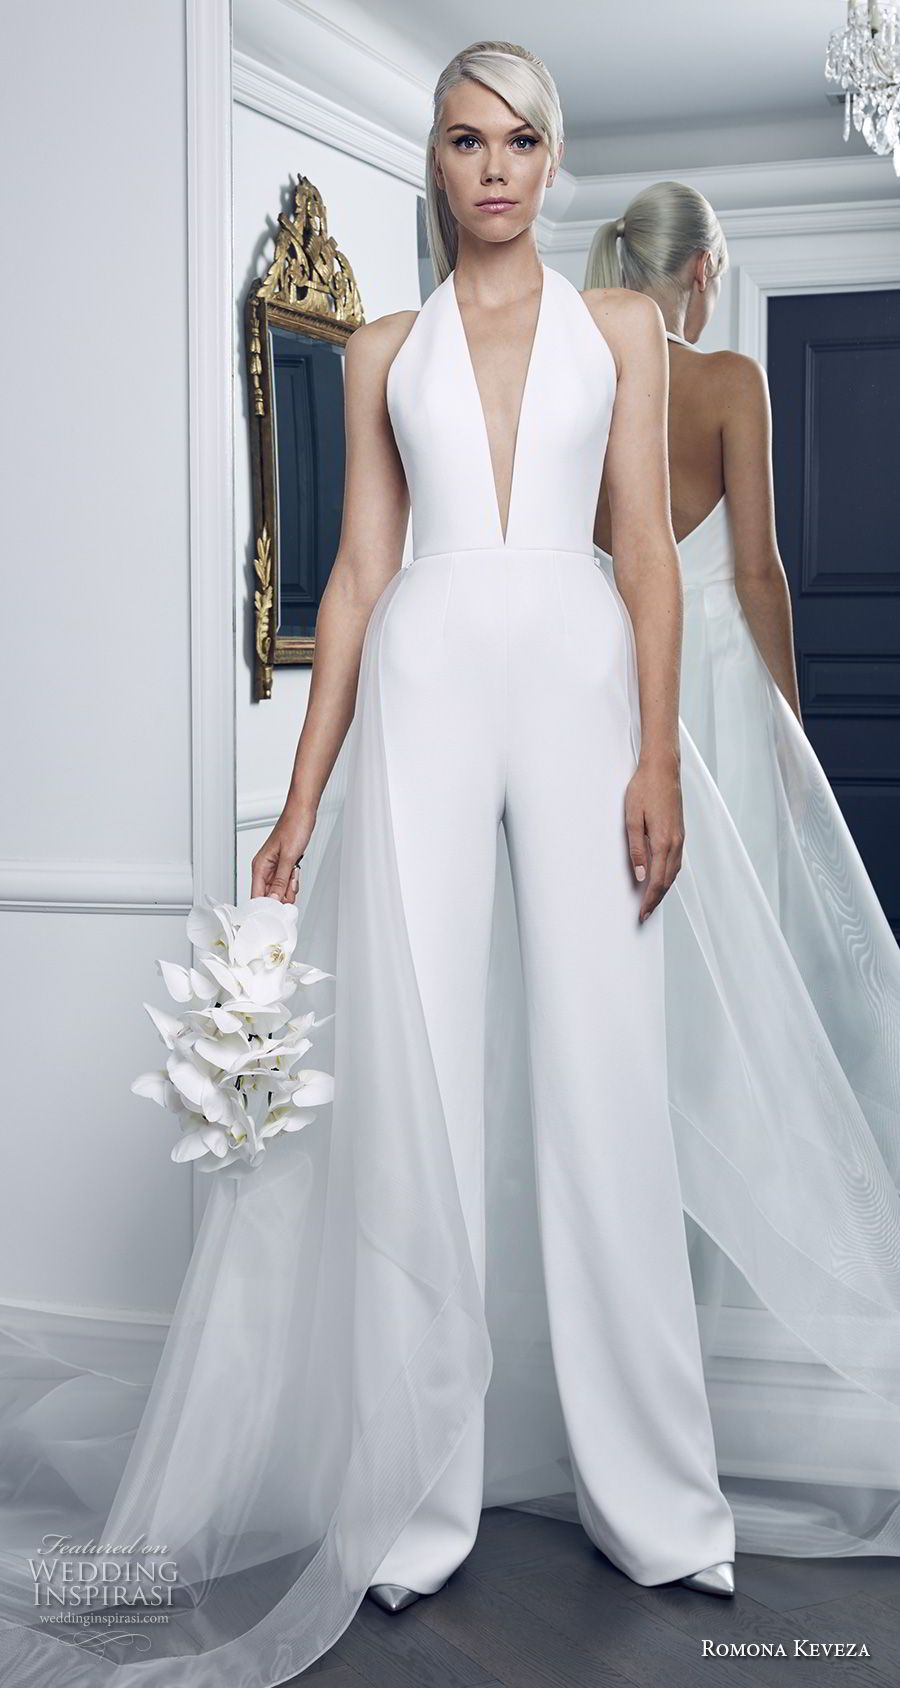 Romona Keveza Collection Bridal Herbst 2018 Brautkleider | Pinterest ...